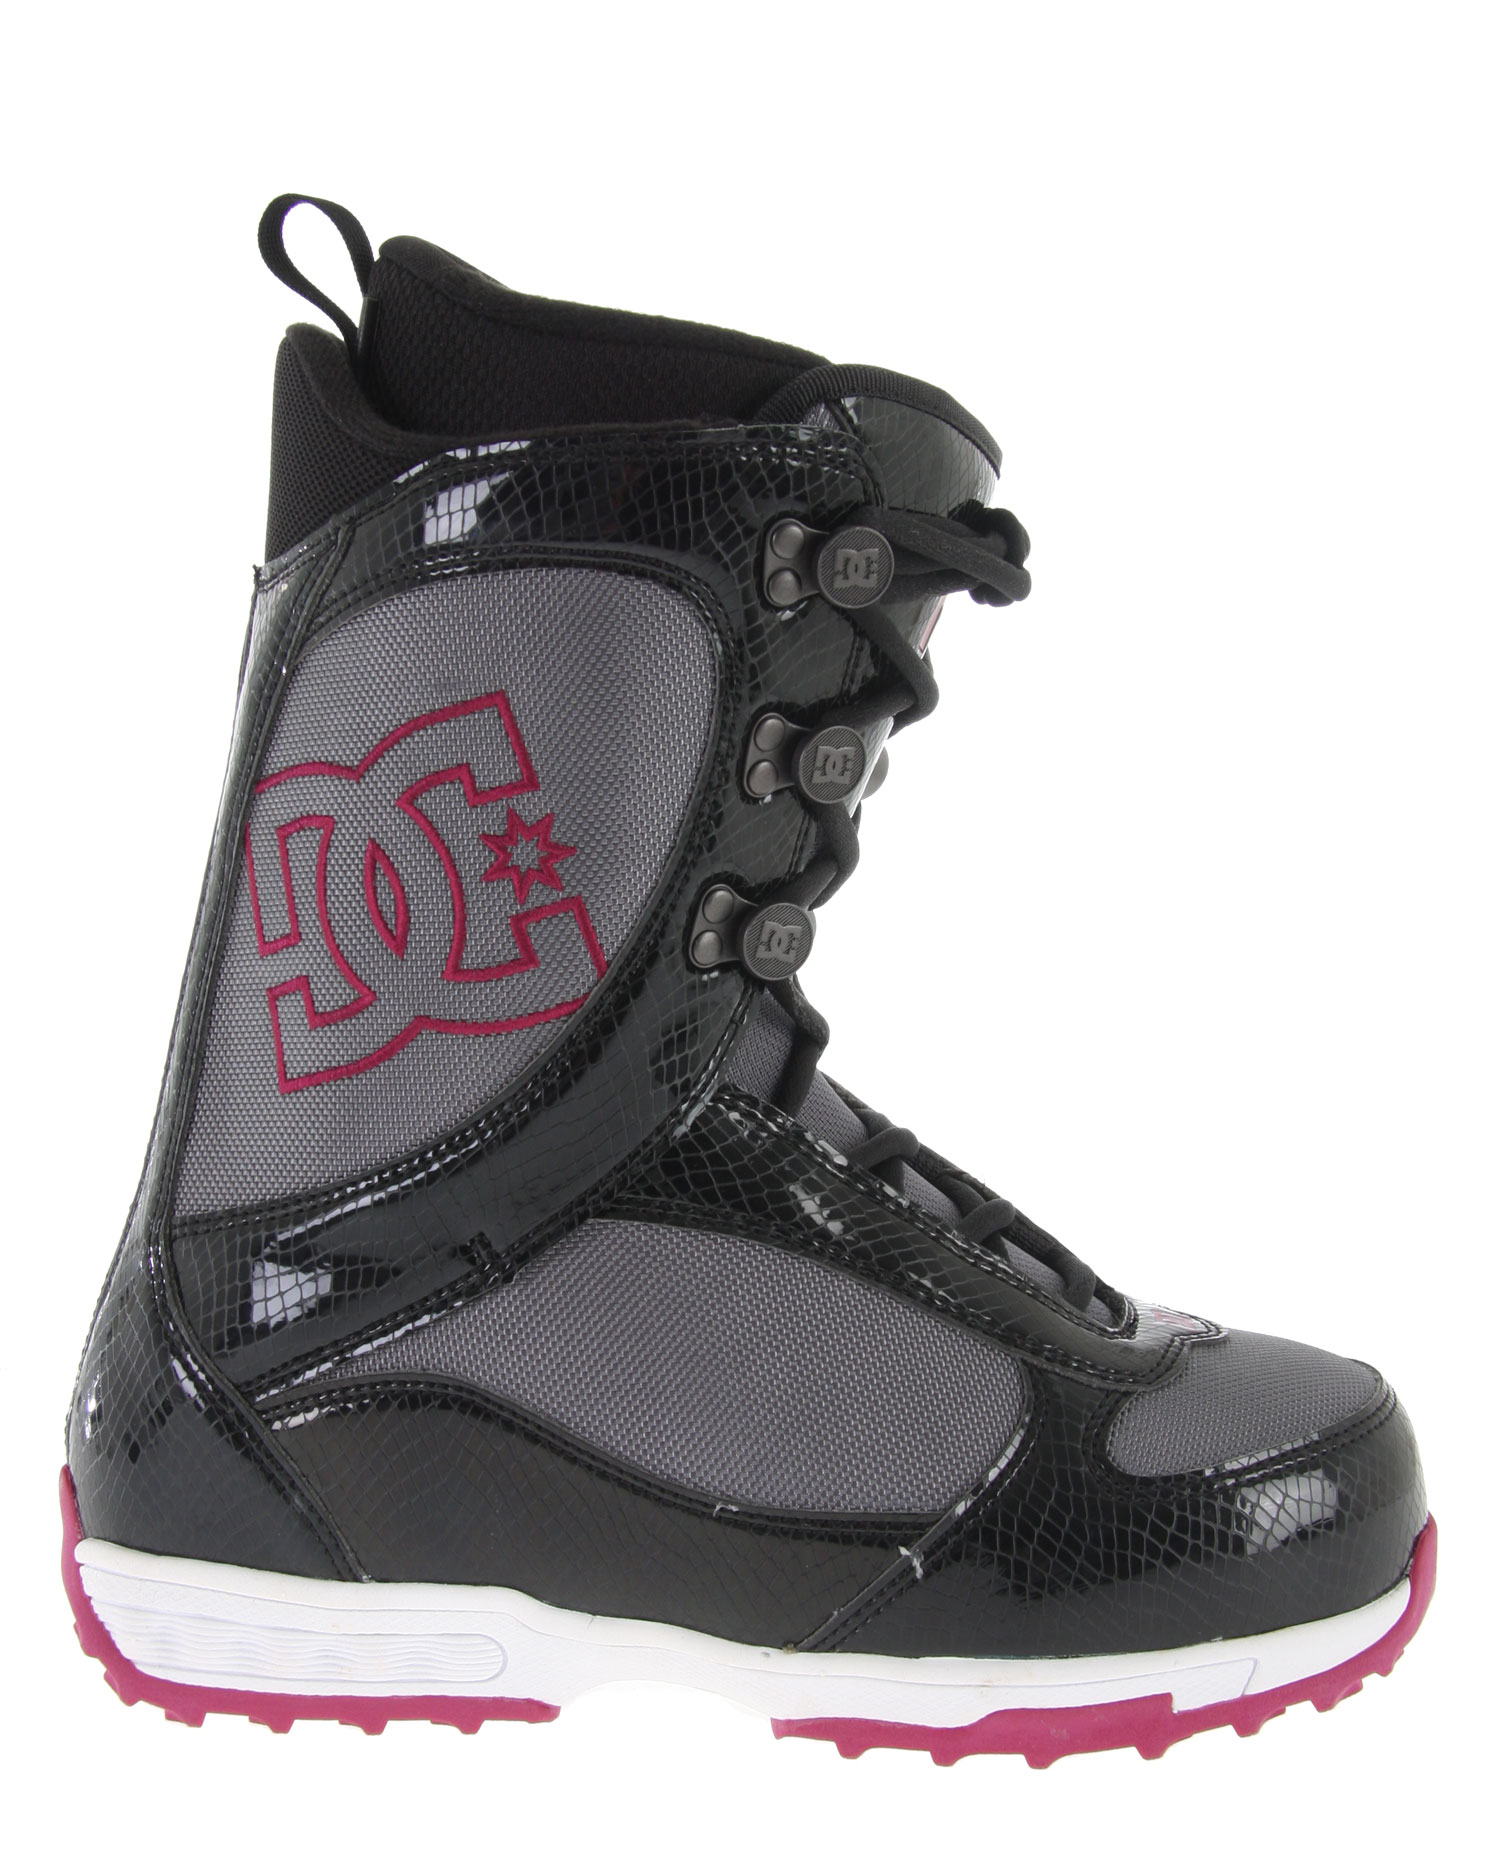 Snowboard The DC Company is known for delivering incredible snowboarding equipment like this set of DC Misty Snowboard Boots! This boot has many awesome features that deliver a high degree of performance, comfort and style. The Command Liner keeps your feet warm and comfortable for long days out on the slopes, while an EVA mid-sole and the molded backstay allow for faster overall responsiveness. This boot is sure to please women snowboarders who range from beginner to intermediate riding levels.Key Features of the DC Misty Women's Snowboard Boots:  Command Liner Tech  EVA Midsole  3D Tongue  Articulated Upper Cuff  Internal Ankle Harness  Molded Backstay - $78.95